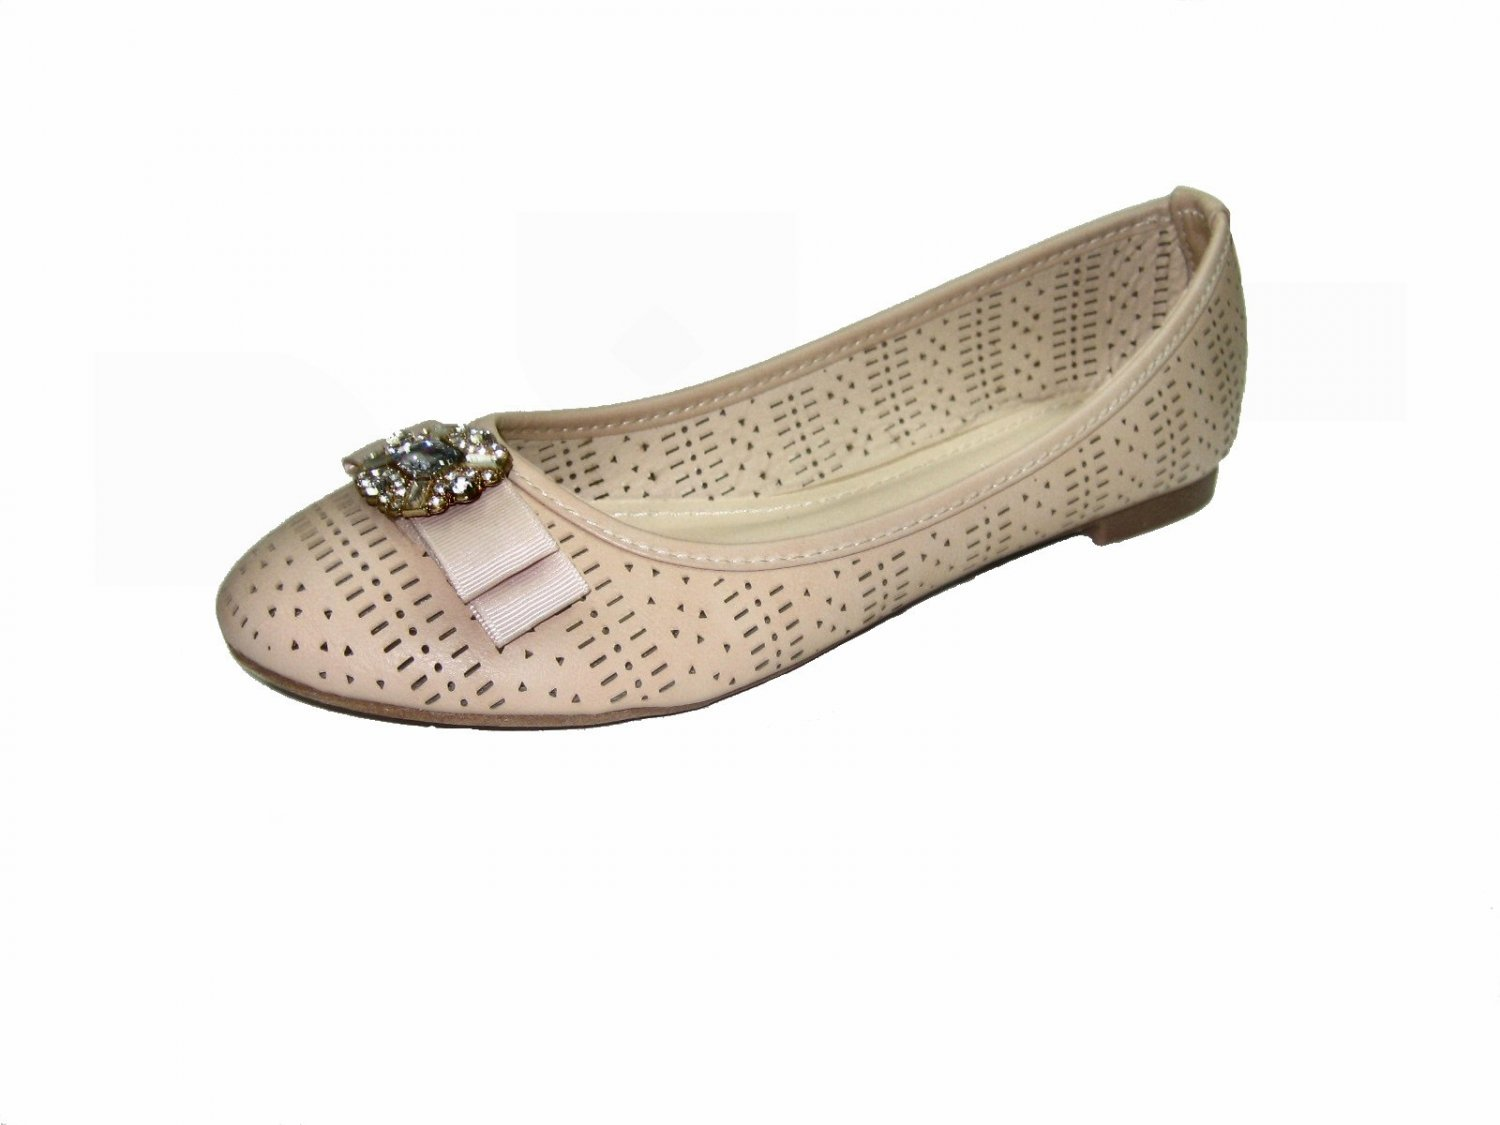 Top Moda SB-25 ballerina flats slip on pumps rhinestone bejeweled bow toe shoes beige size 6